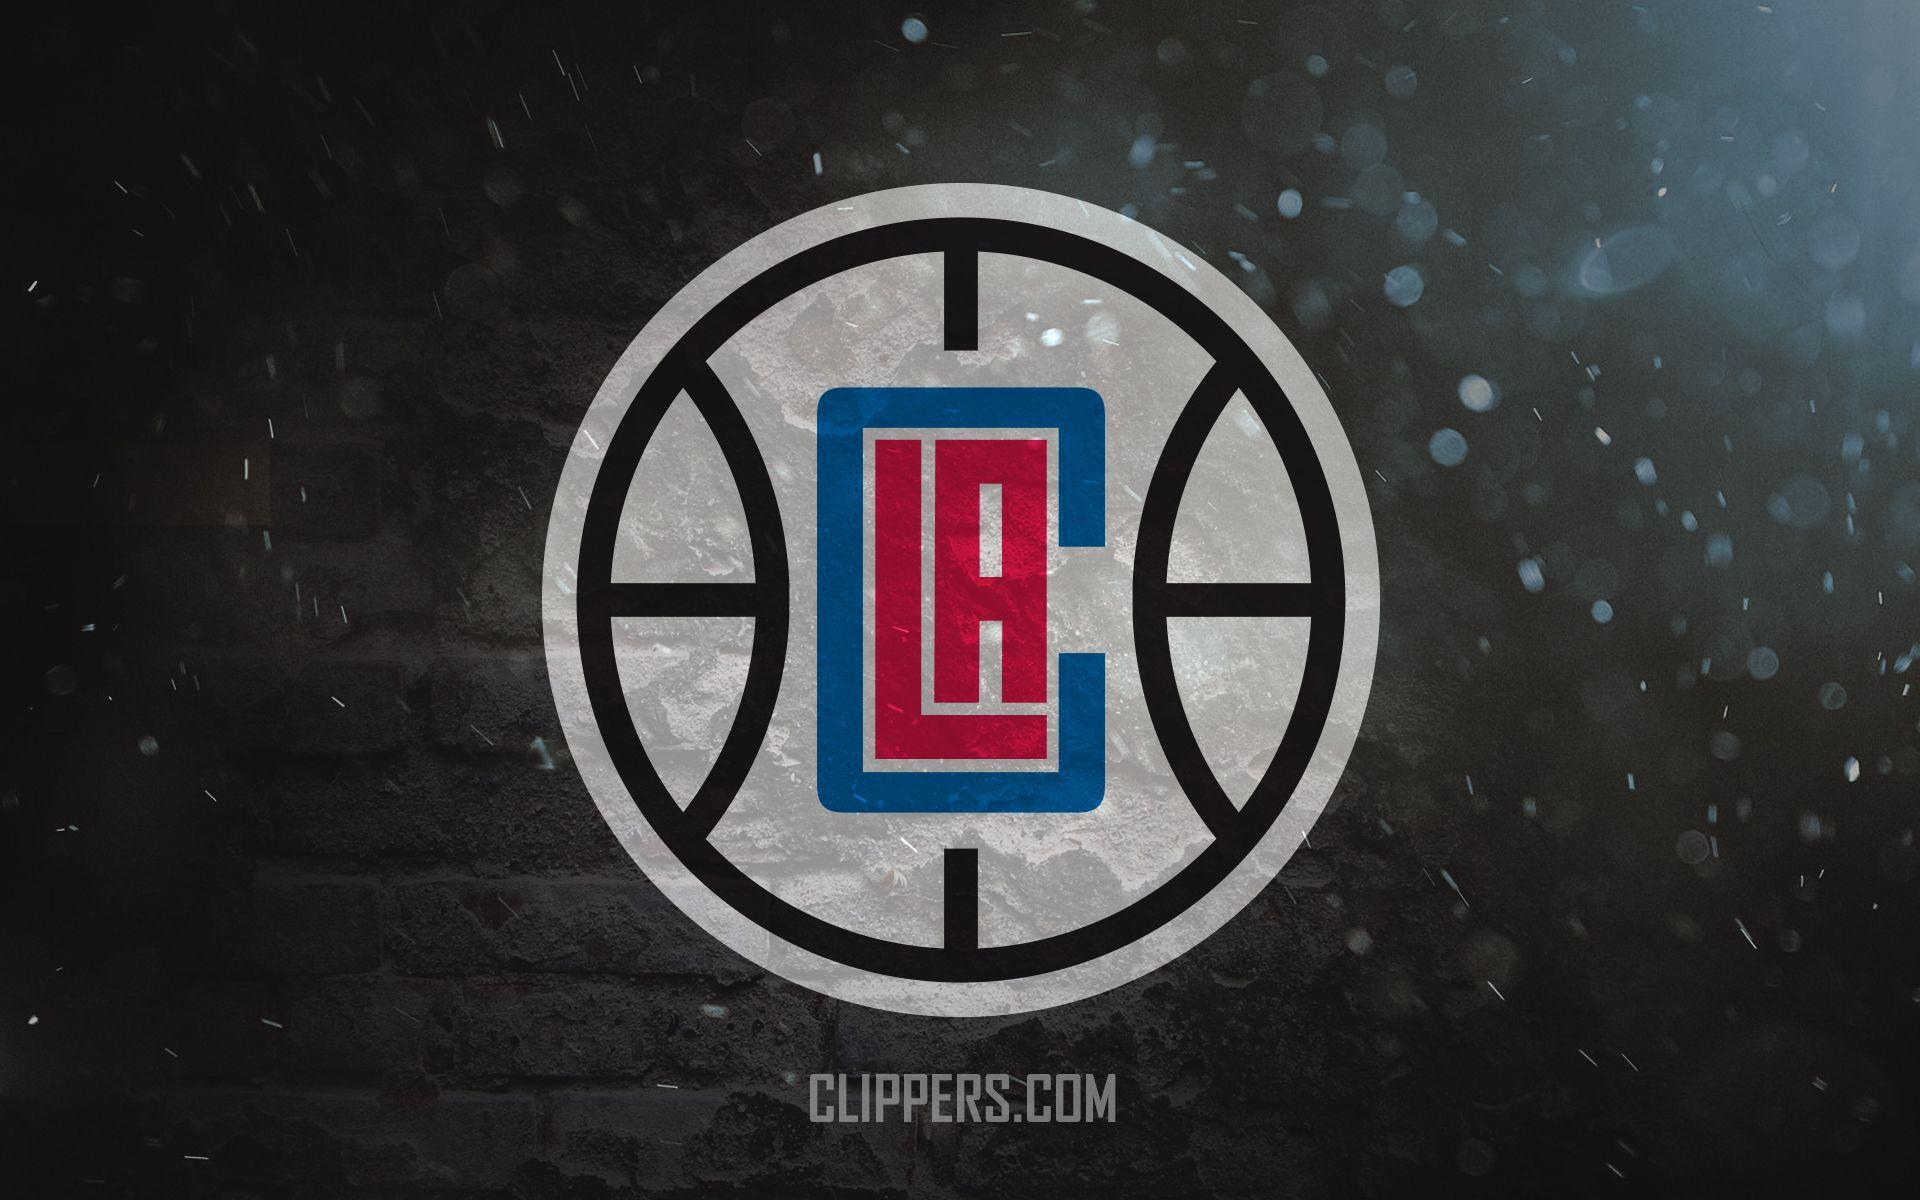 Clippers Wallpapers Collection